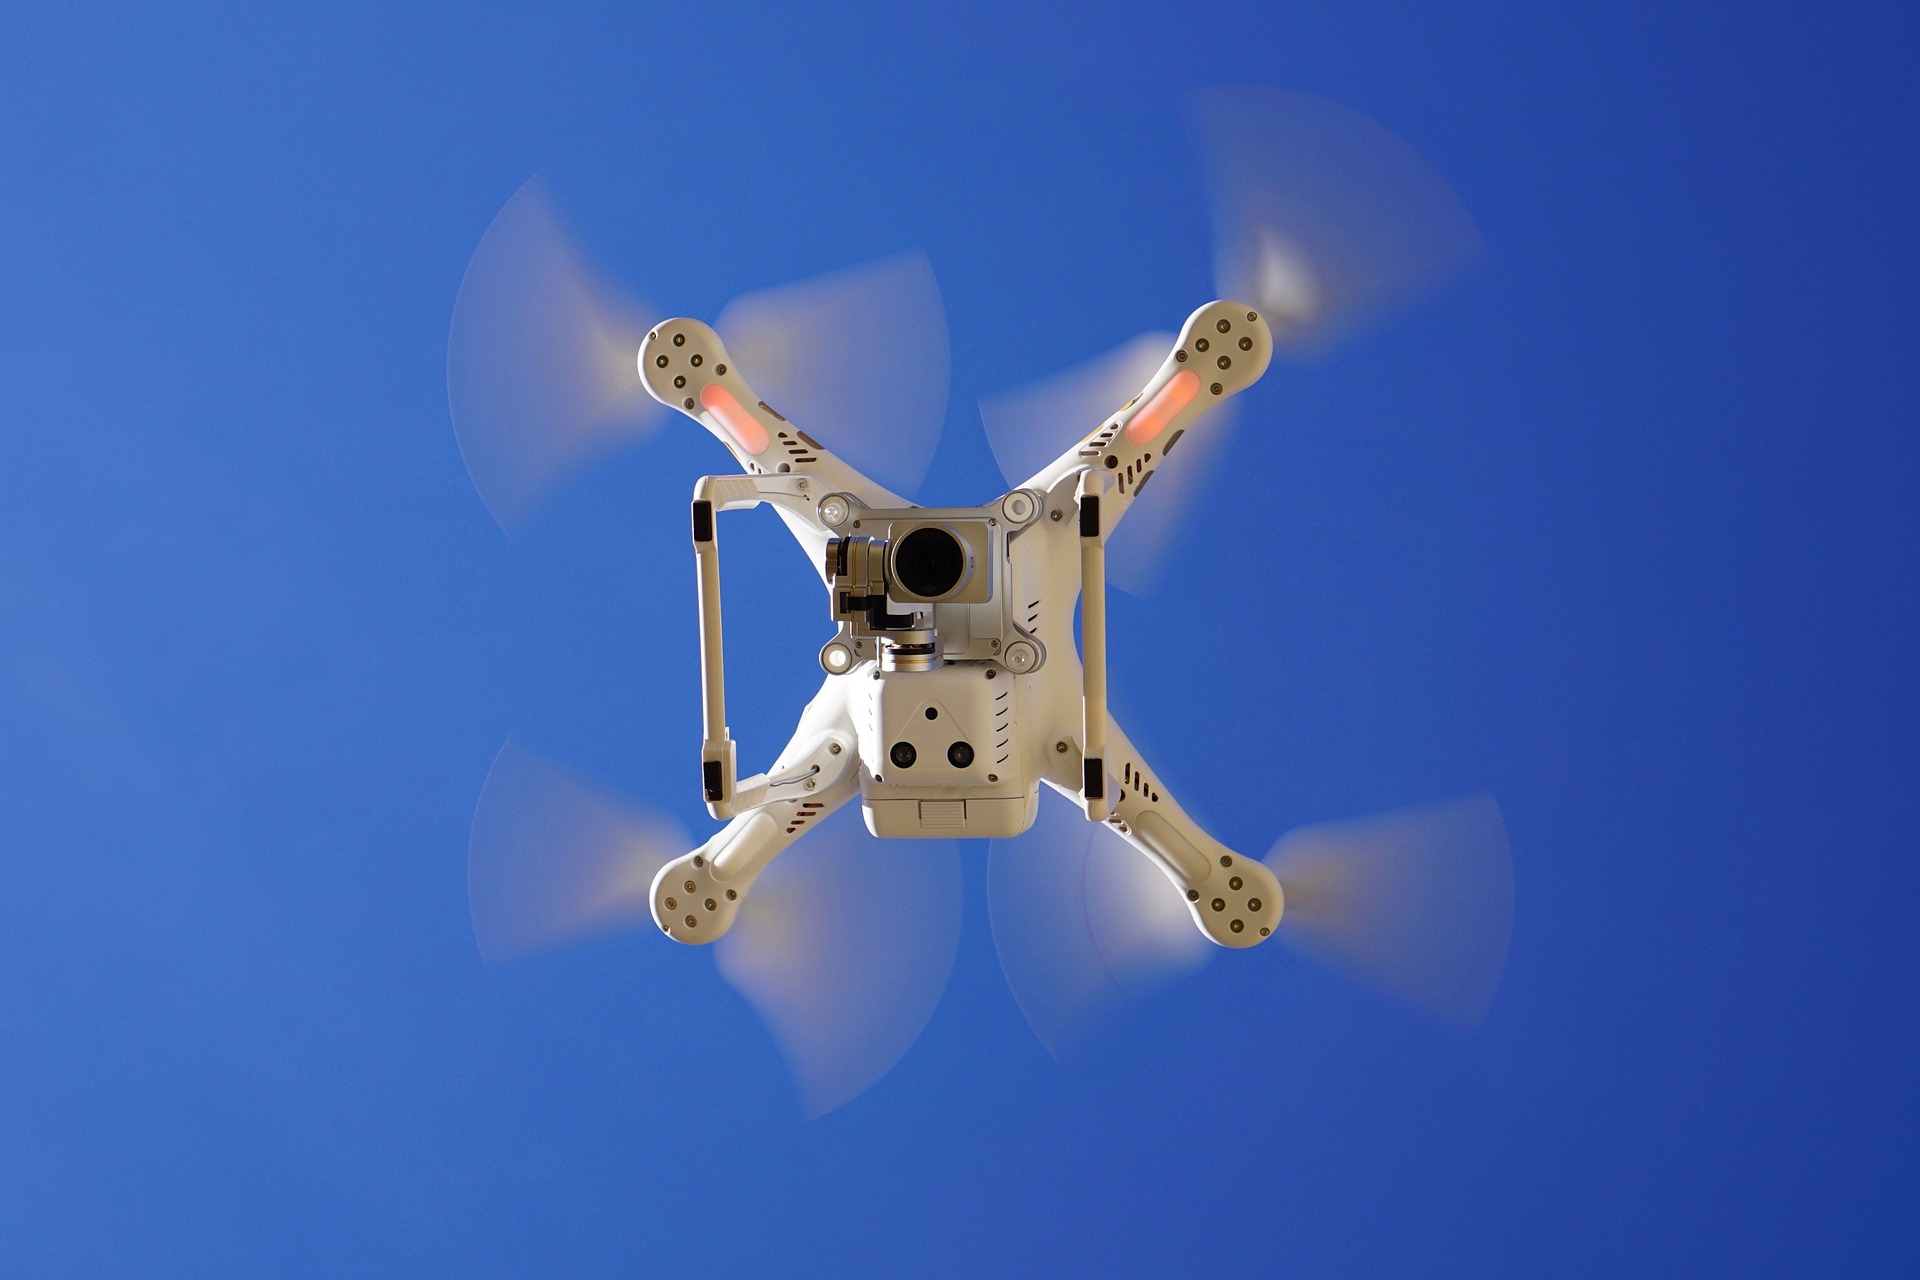 drone-hovering-helicopter-parenting-Americas-Family-Coaches-radio-audio-podcast